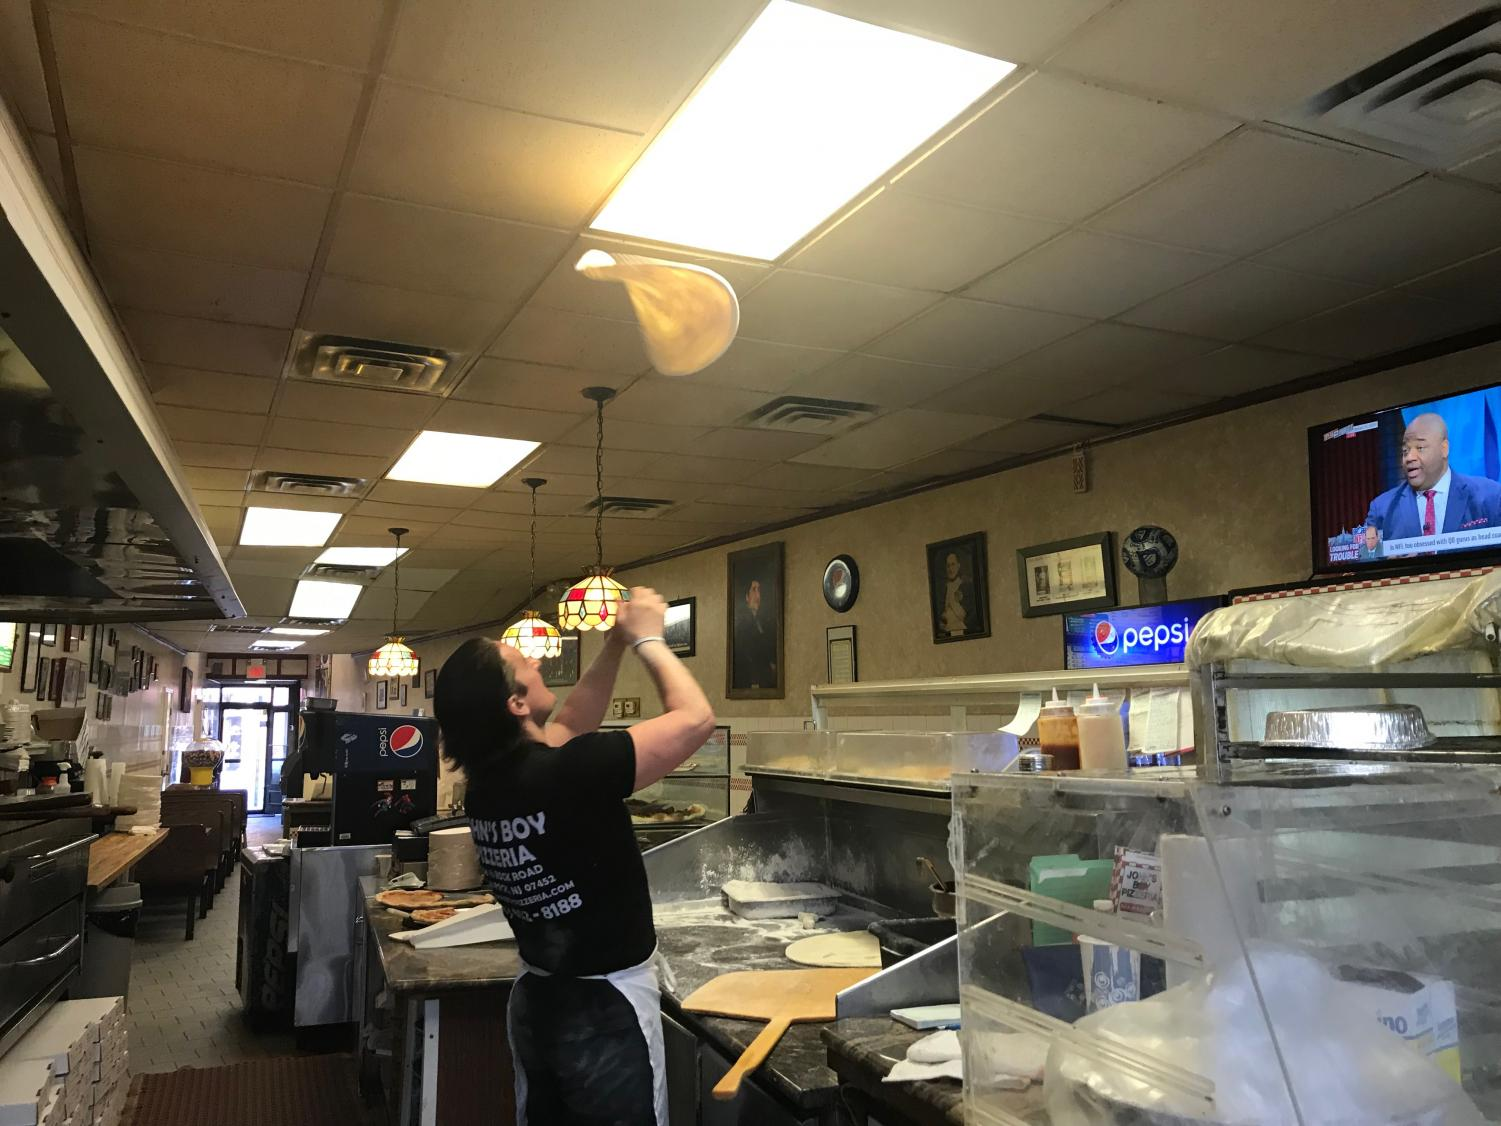 Umberto throwing the pizza dough in the air as he prepares to make a pie for a customer.